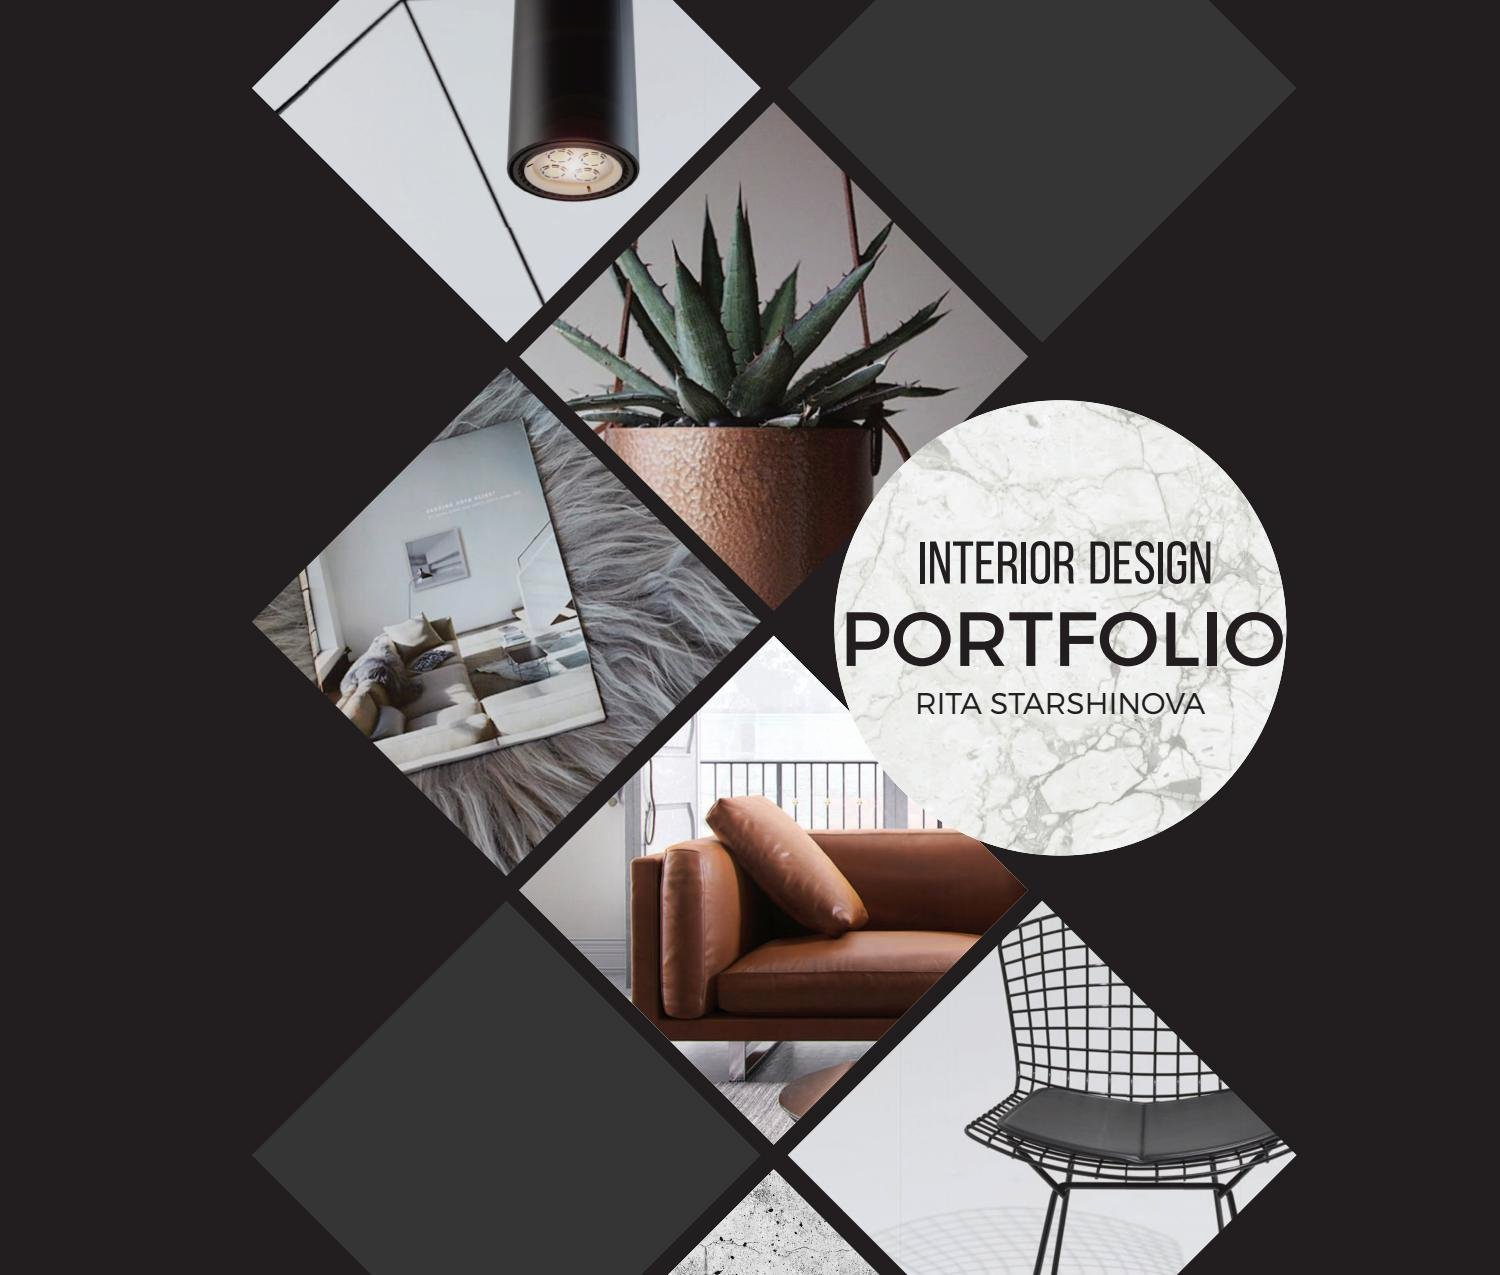 Portfolio Cover Pages Templates Lovely Rita Starshinova Portfolio by Rita Starshinova issuu